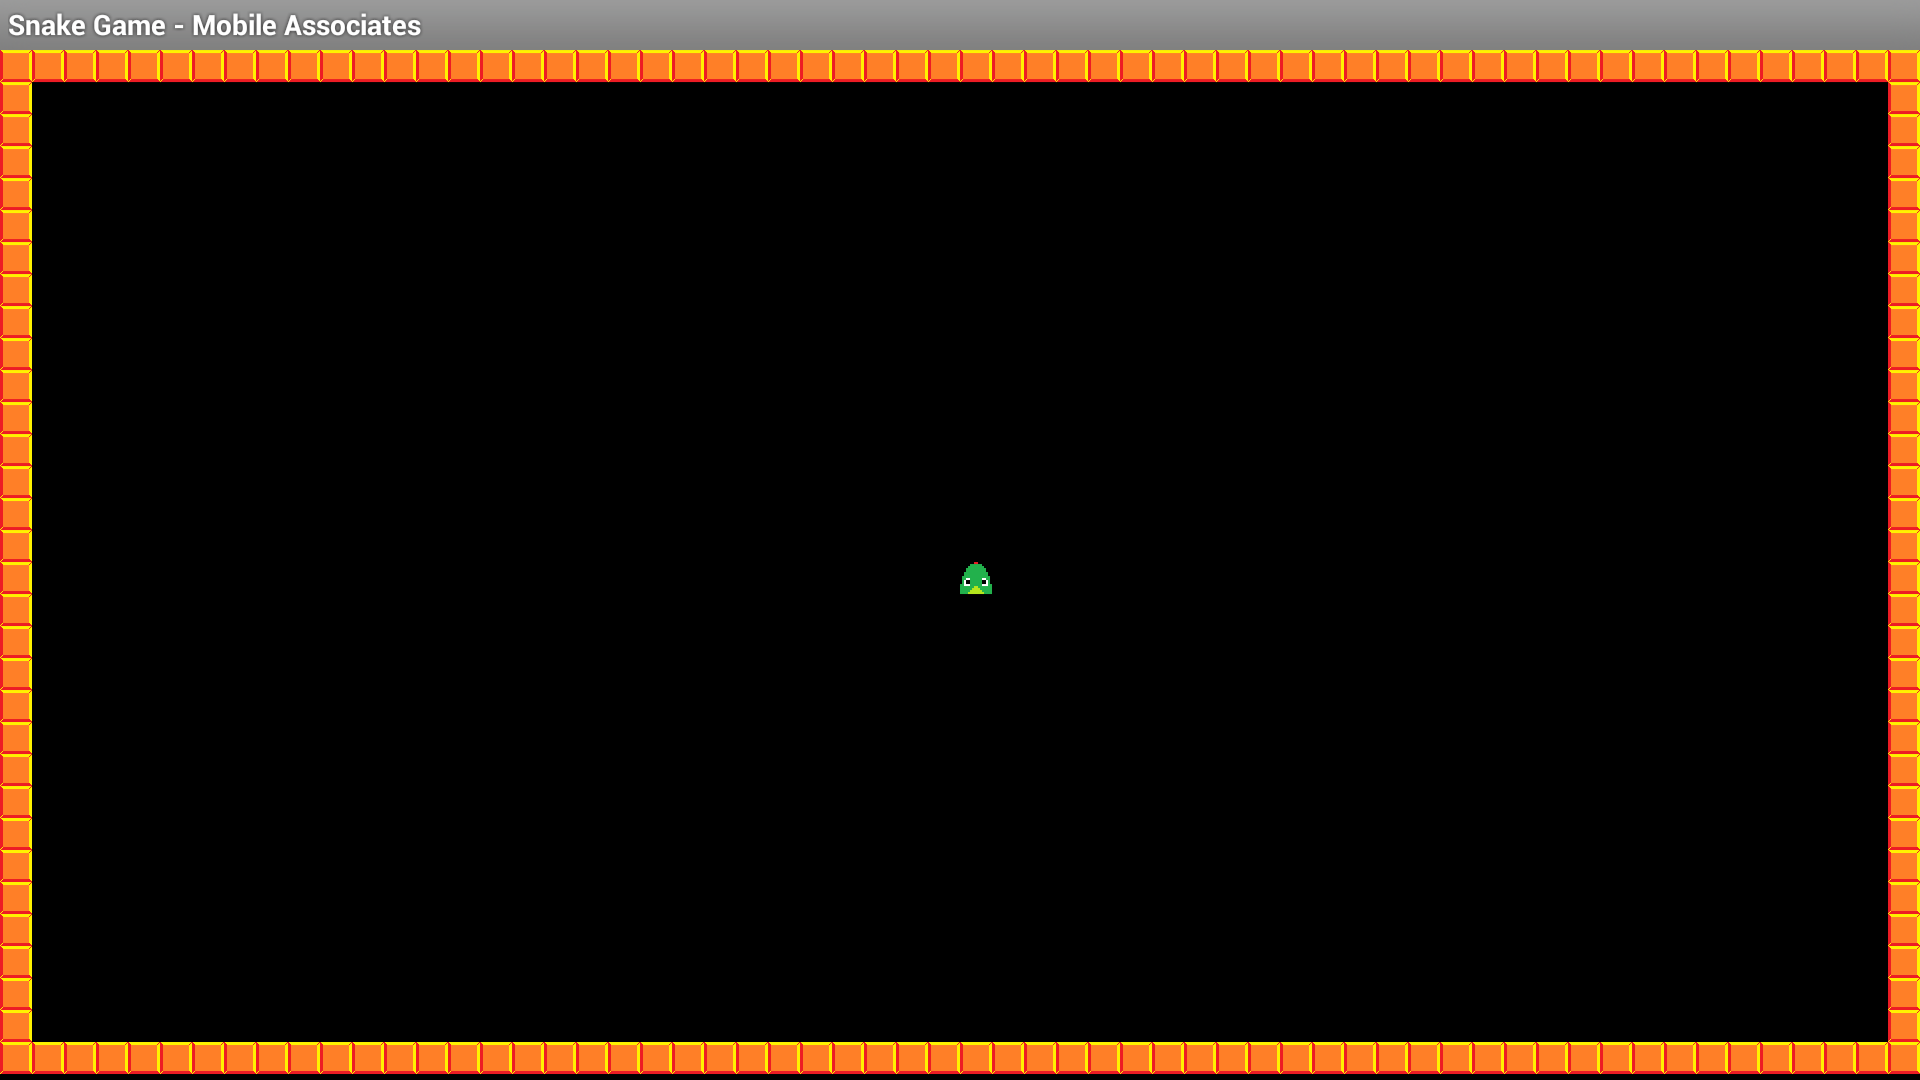 Figure 6- Snake Game fixed and running in landscape